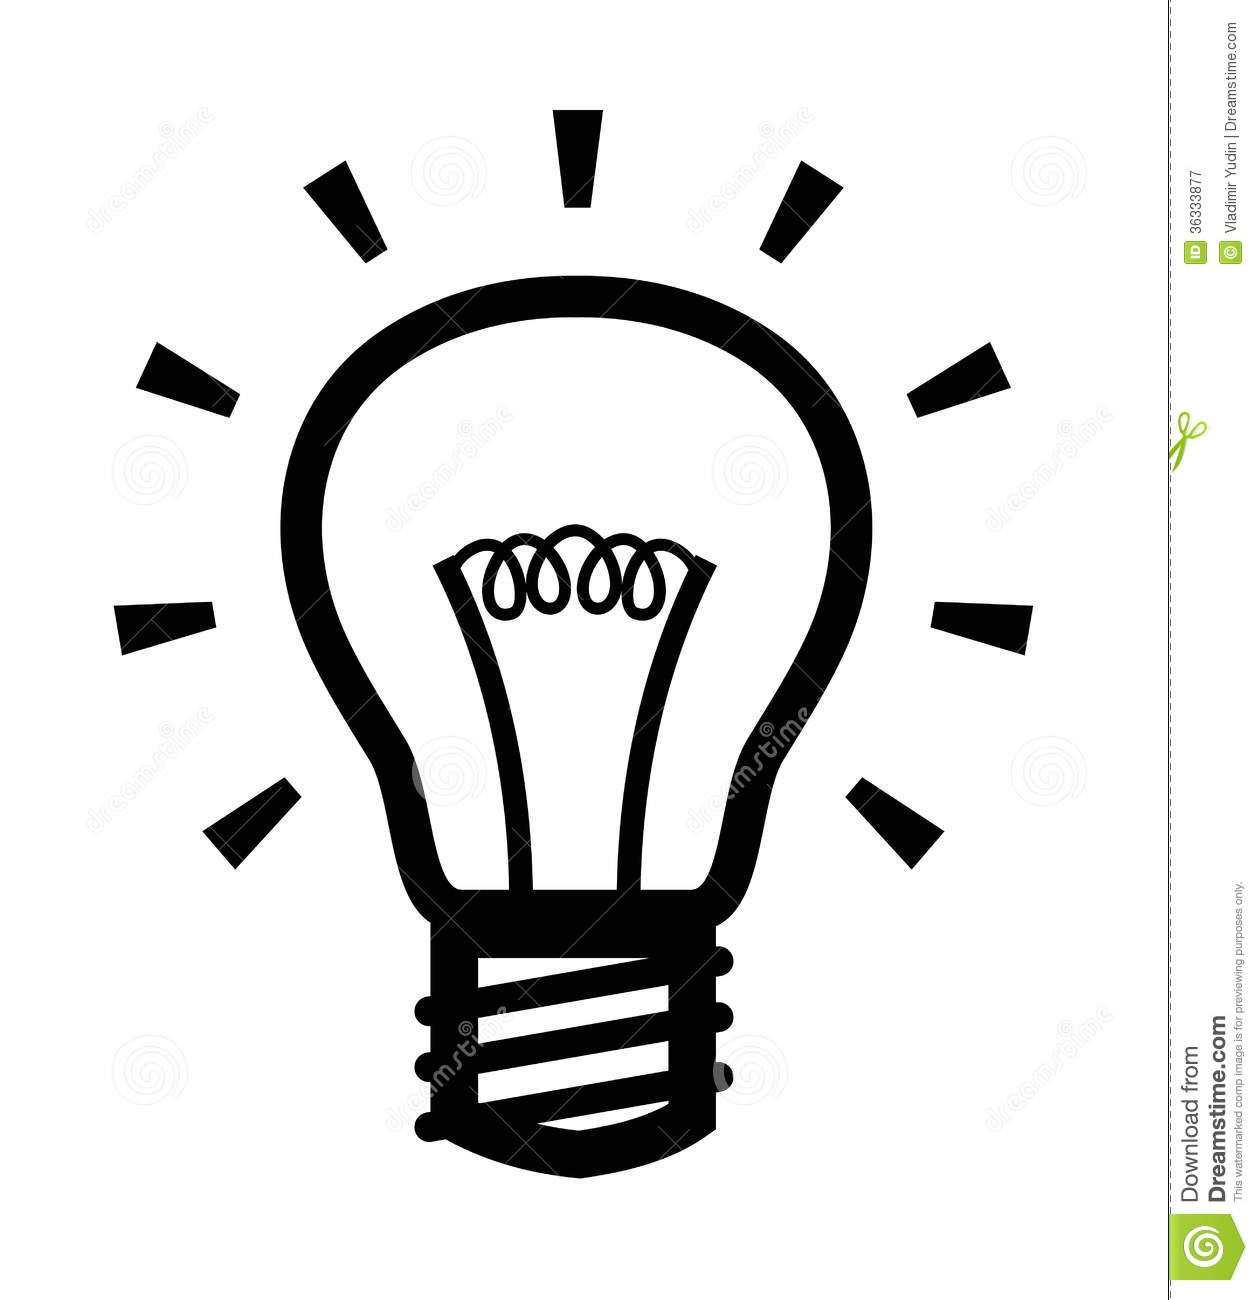 vector light bulb royalty free stock photography image language arts clip art black and white language arts clip art black and white